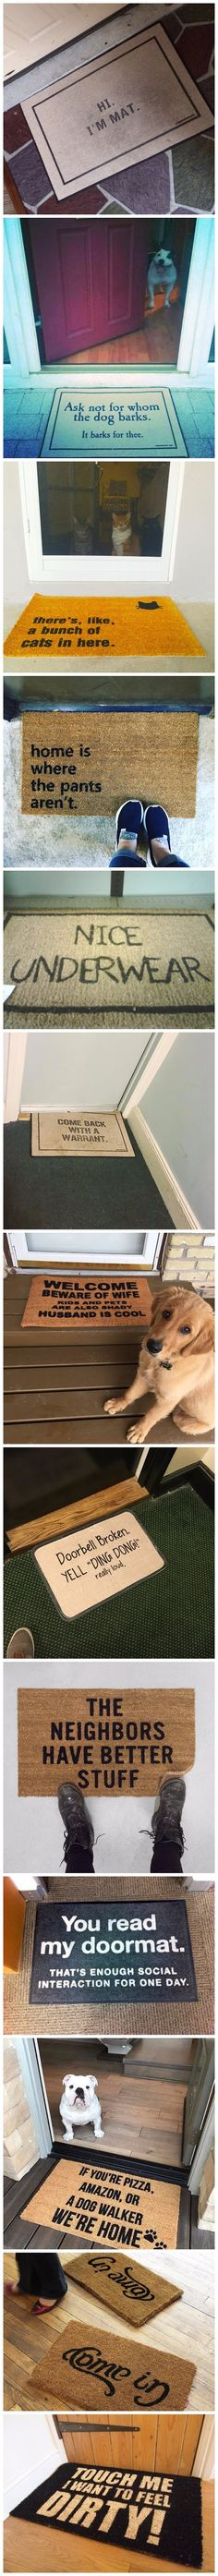 Funny doormat collection